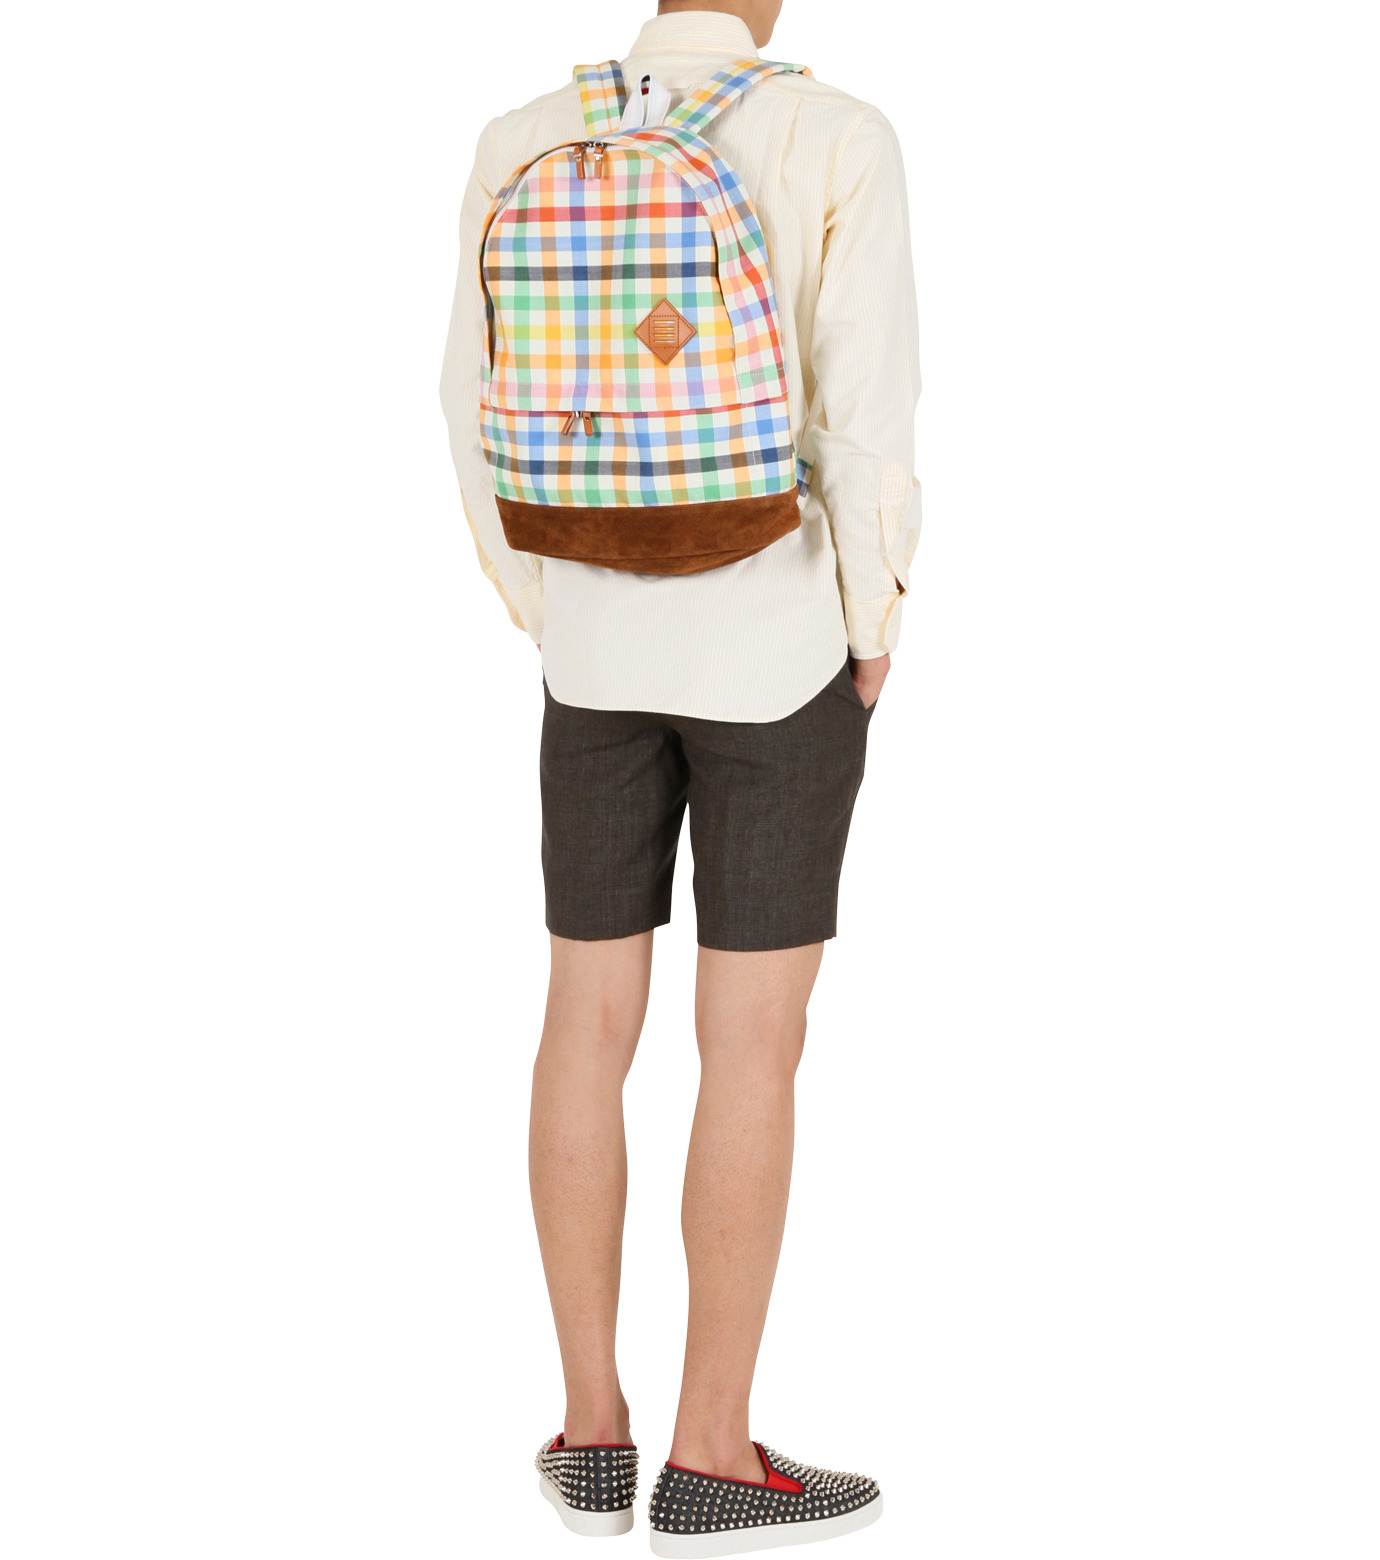 Thom Browne(トムブラウン)のBackpack-YELLOW-MAG005BW6948-32 拡大詳細画像7